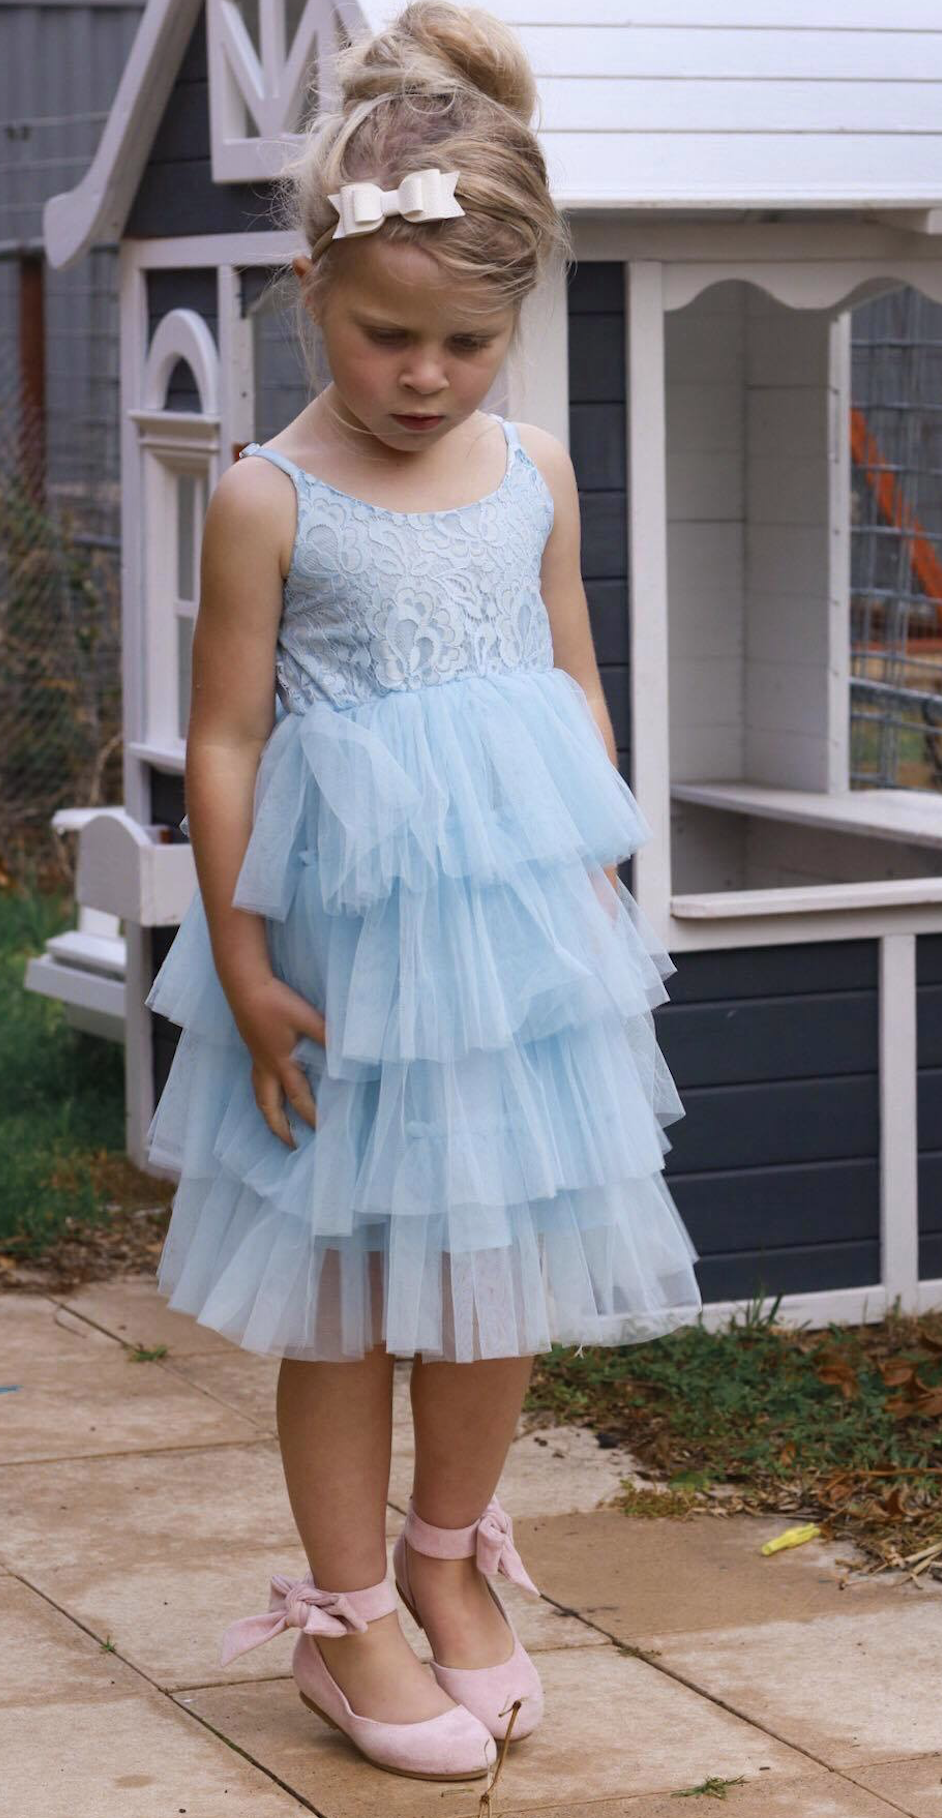 Girls Ice Blue Dolly Dress (With images) Dolly dress